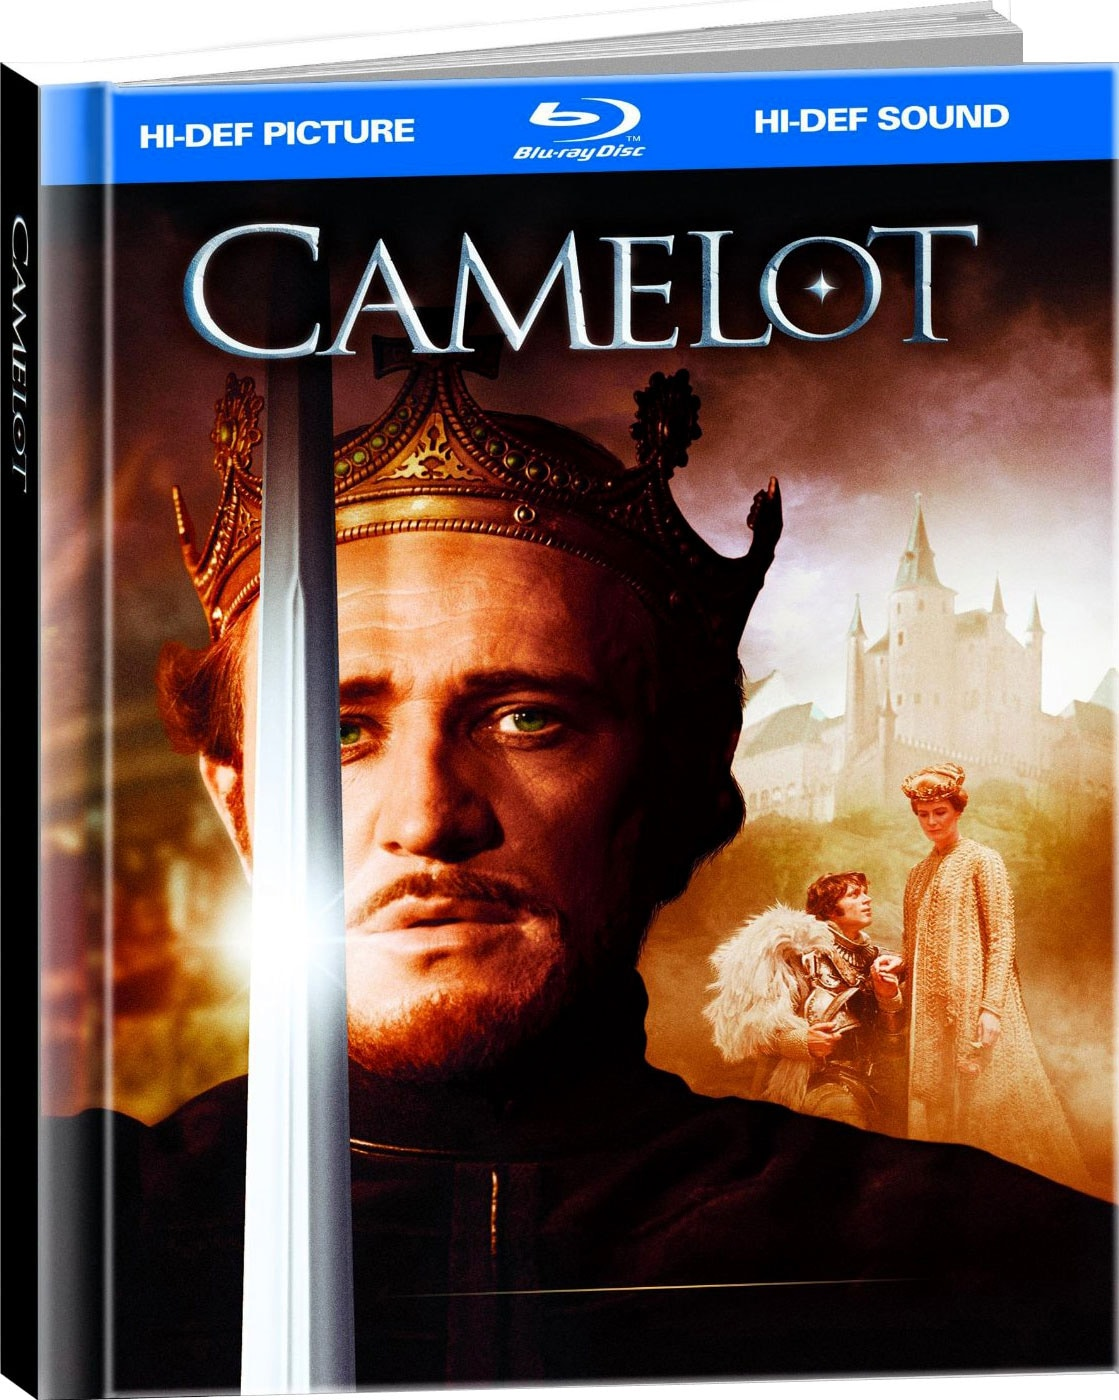 Camelot - 45th Anniversary Edition DigiBook (Blu-ray Disc)